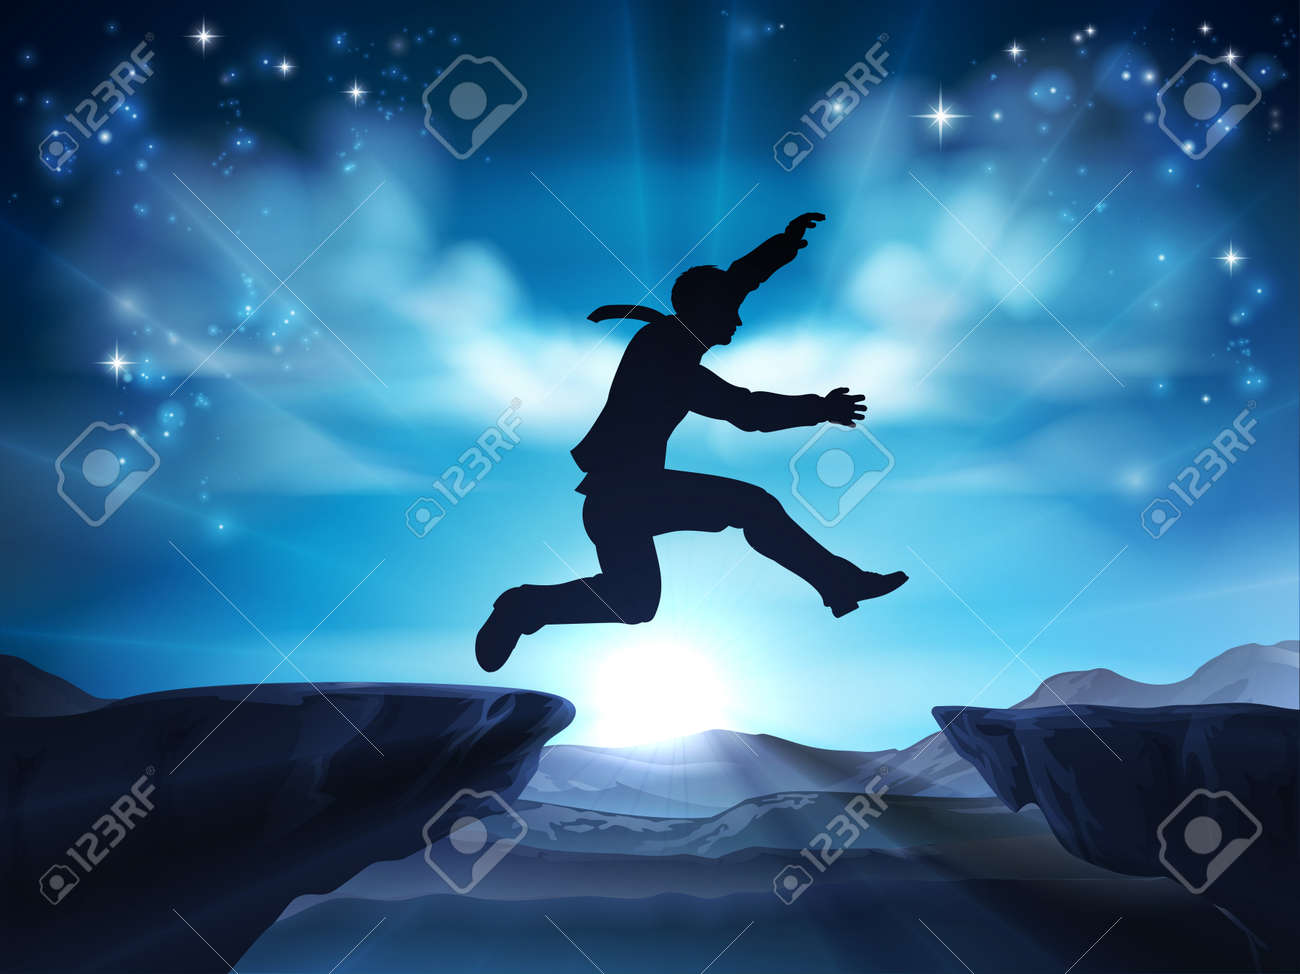 Businessman in silhouette in mid air jumping across a mountain gap. A concept for taking a leap of faith, being courageous or taking a risk in business or ones career. - 74523008